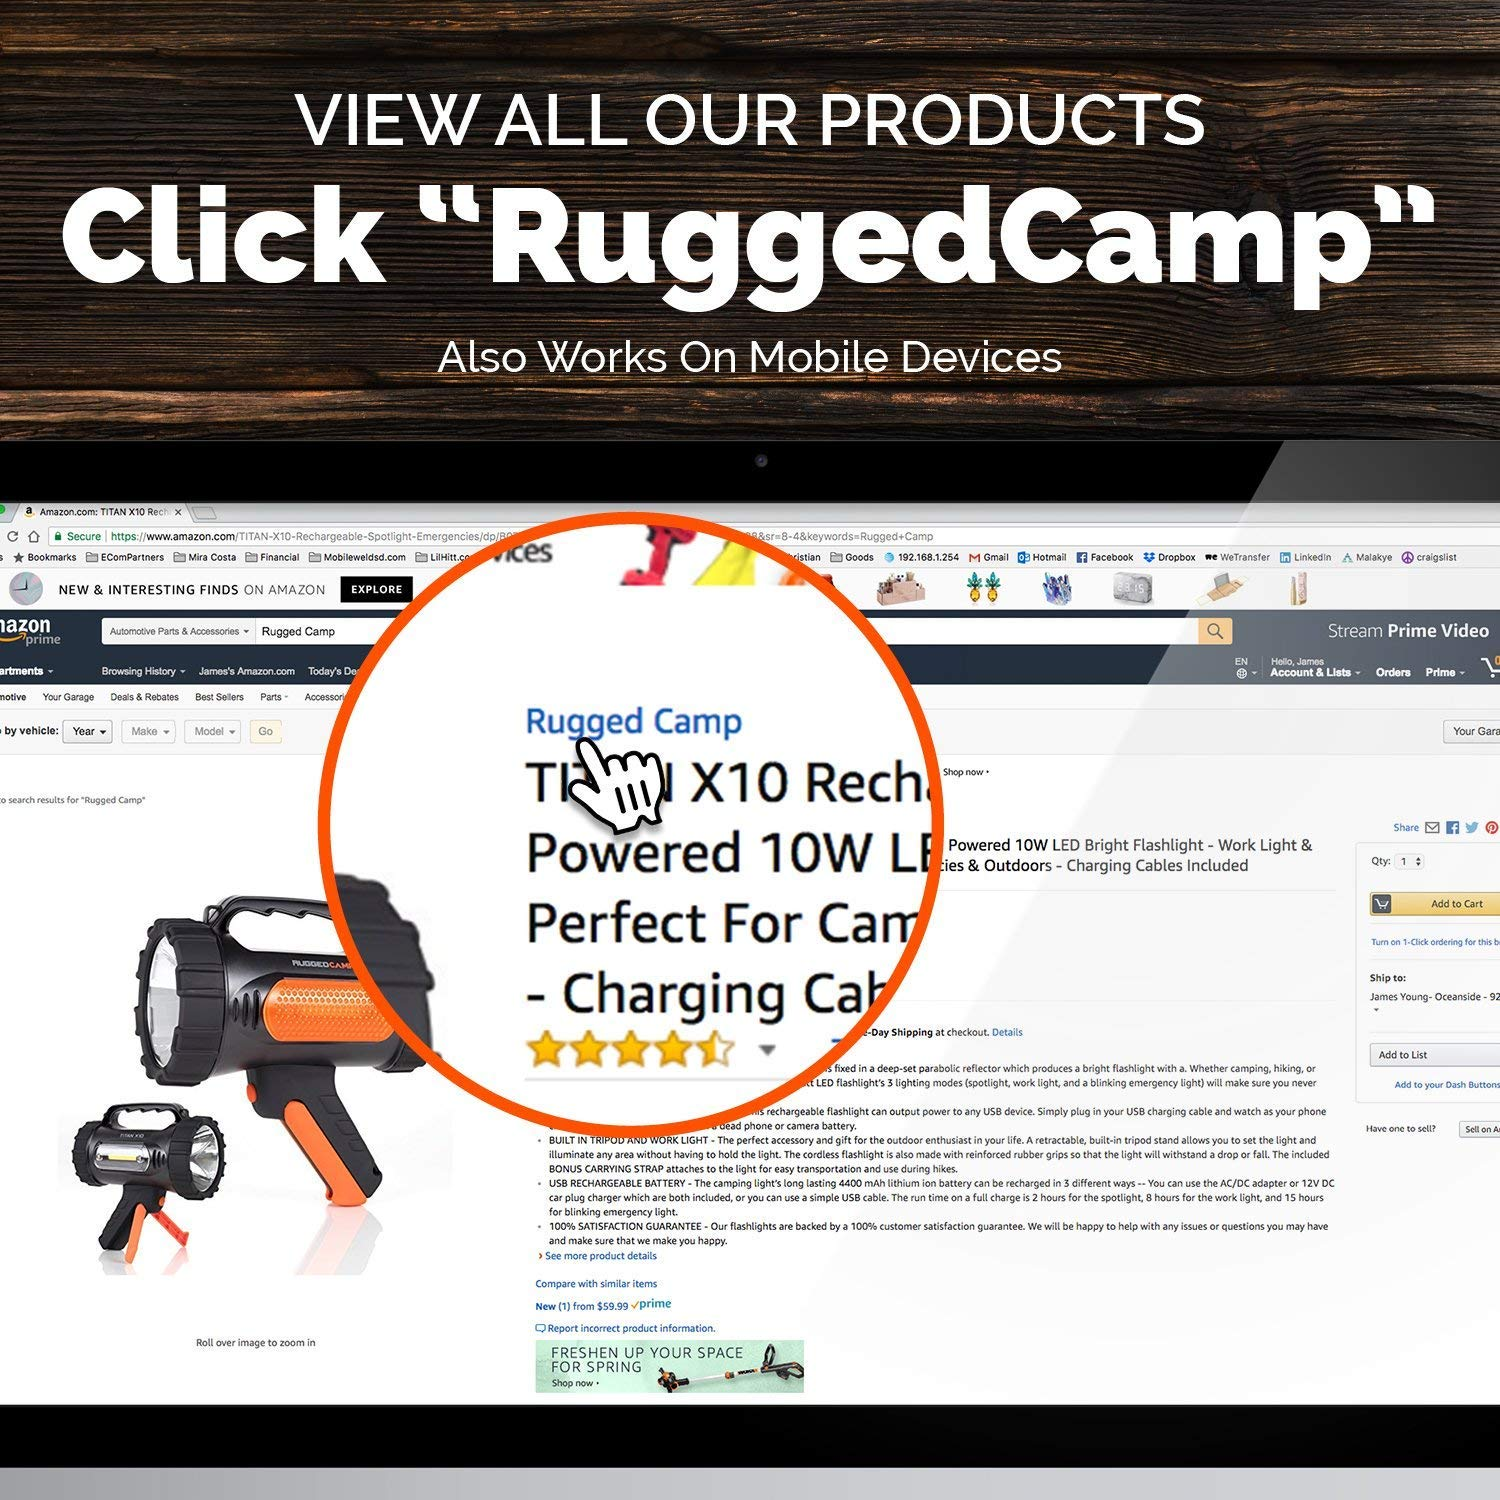 Rugged Camp Titan X10 Rechargeable Spotlight - 1000 Lumens - High Powered 10W LED Bright Flashlight - Work Light & Tripod - Perfect for Camping, Hiking, Hunting, Emergencies & Outdoors (Black/Orange) by Rugged Camp (Image #7)